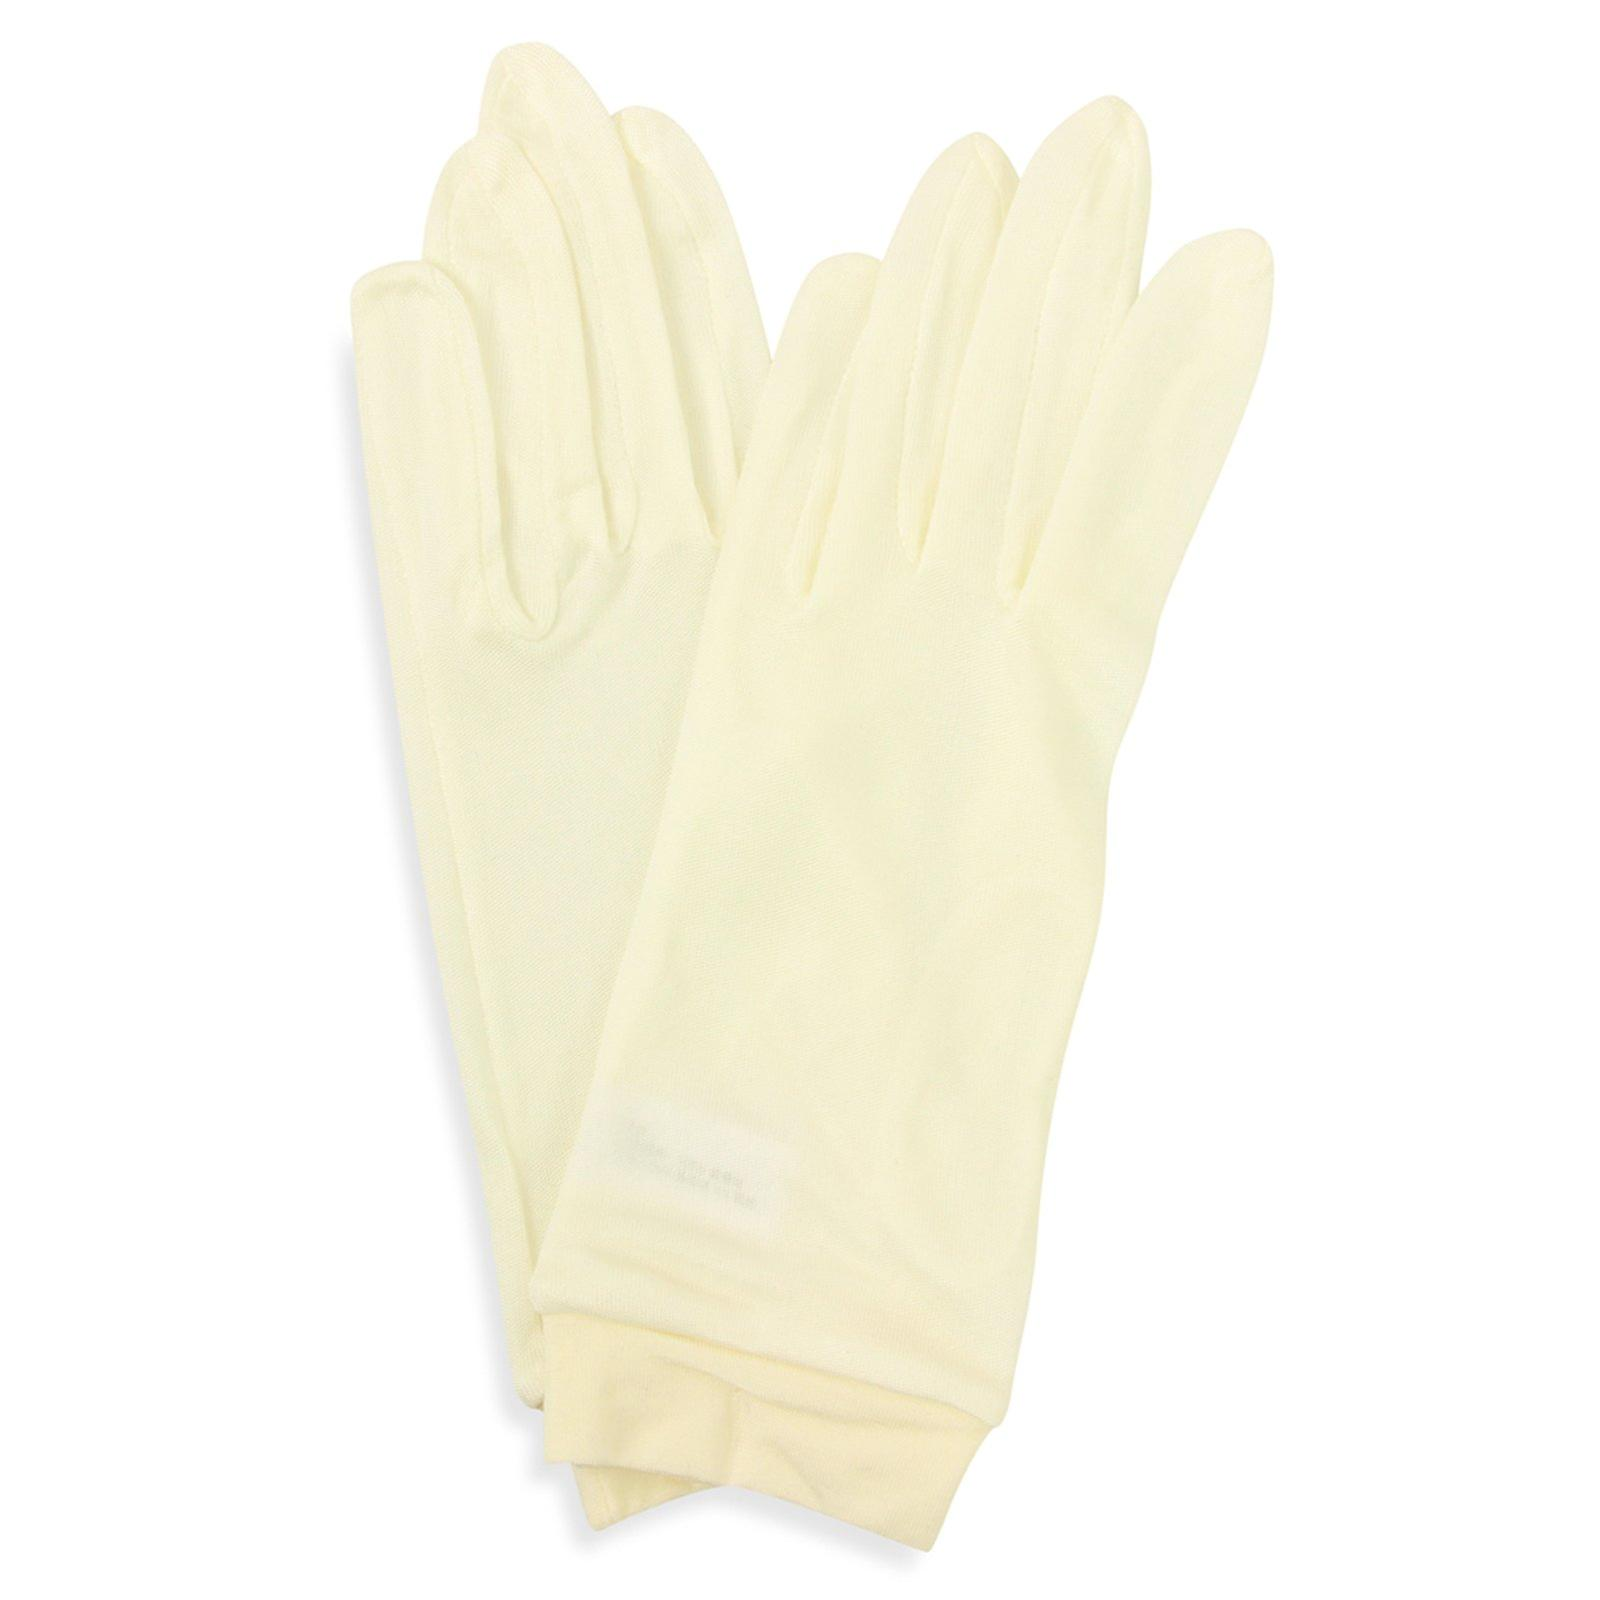 Pure silk gloves,  hypoallergenic, reduces the signs of aging -